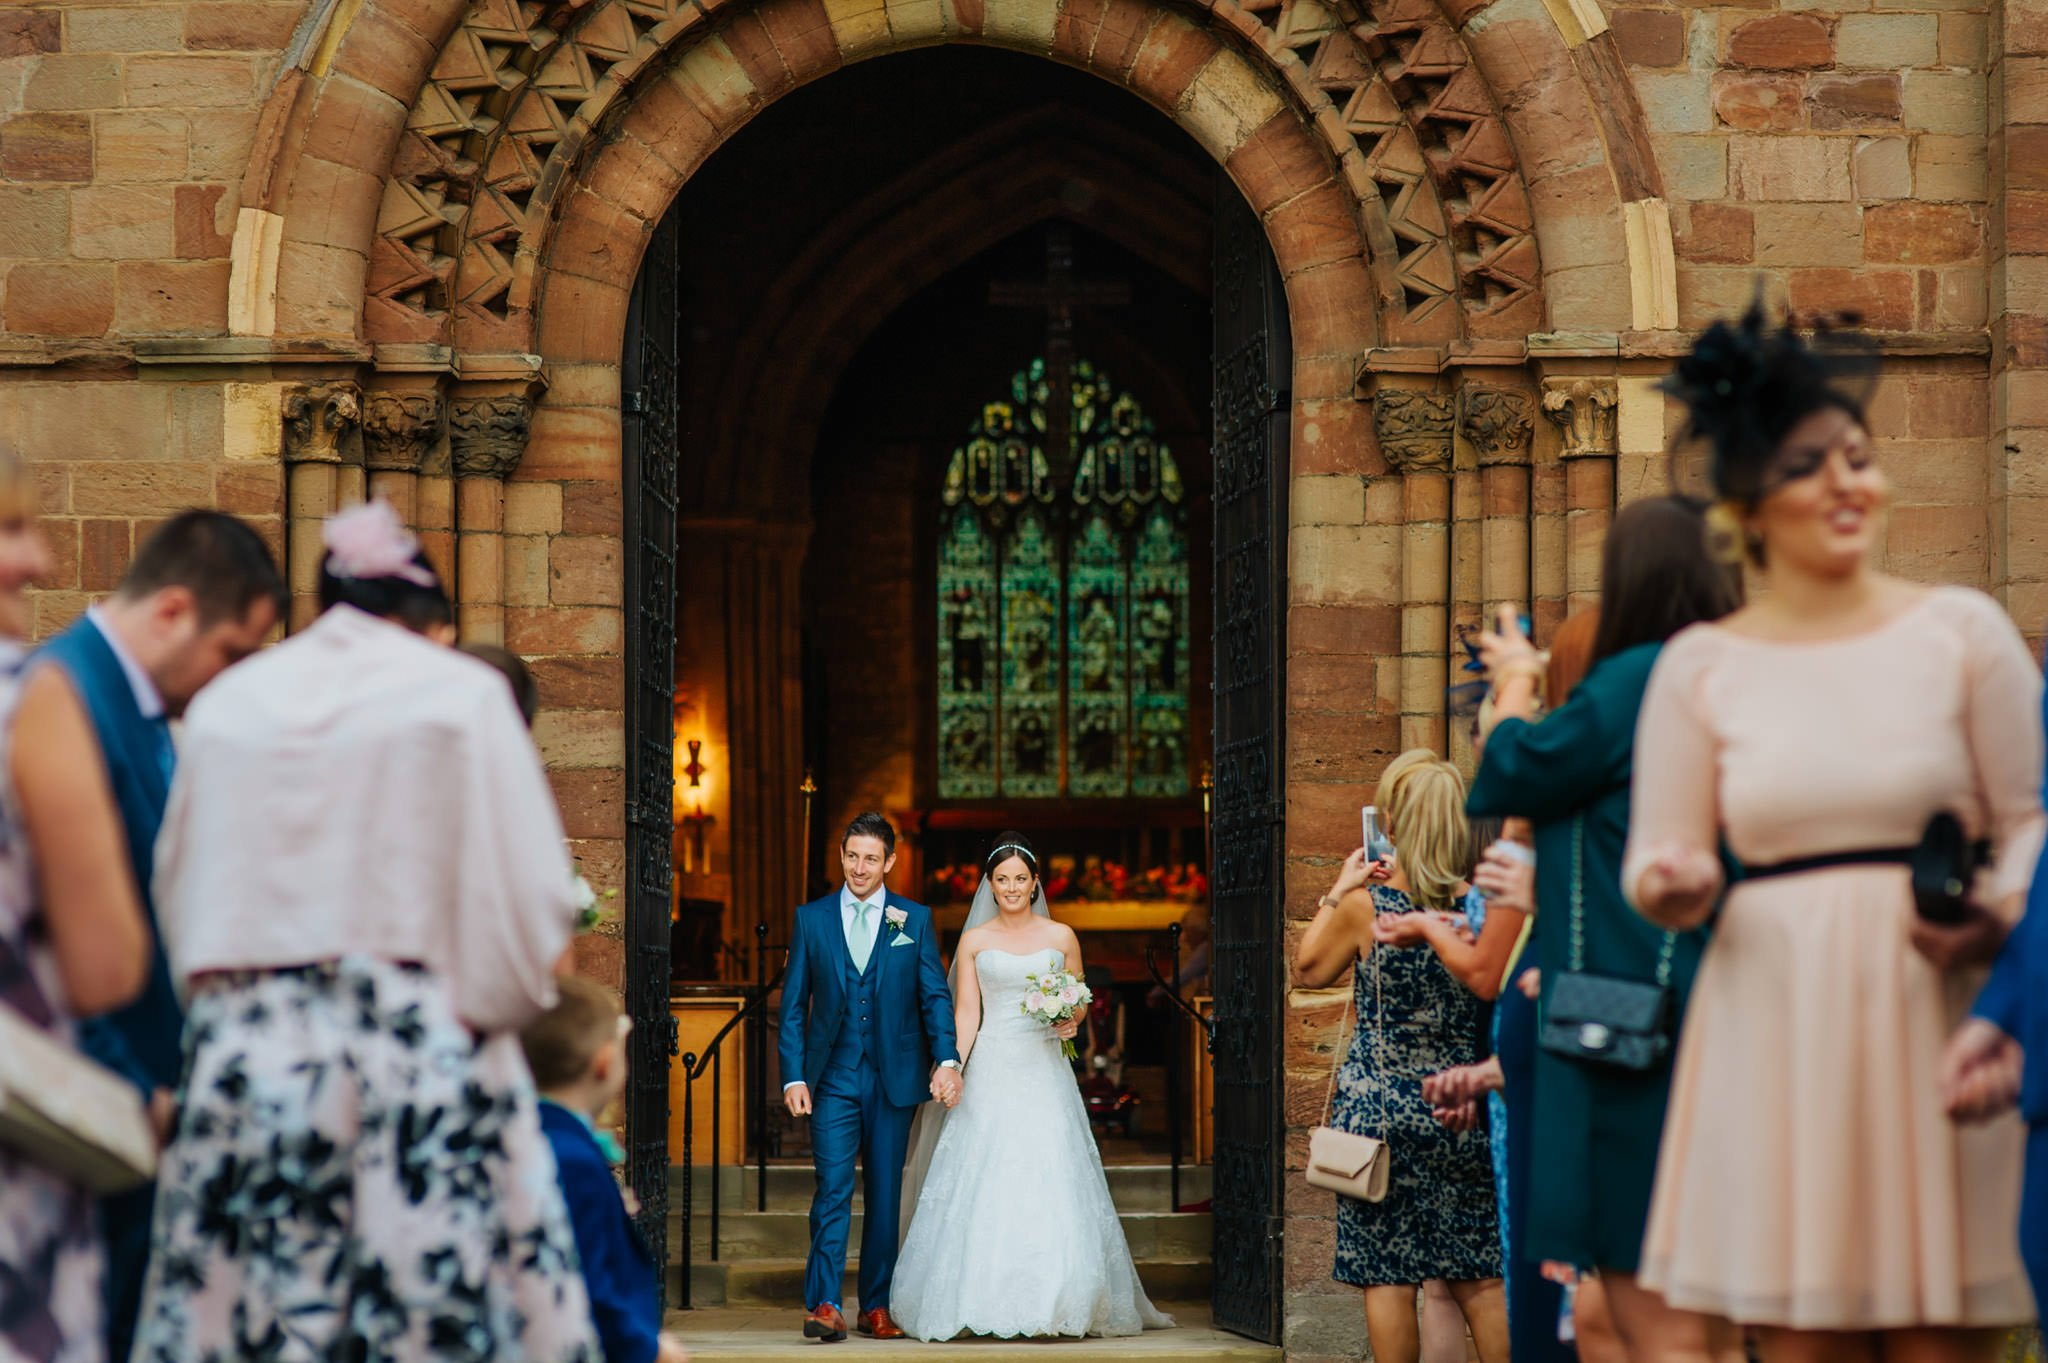 eastnor castle wedding pictures 41 - Eastnor Castle wedding photographer Herefordshire, West Midlands - Sarah + Dean